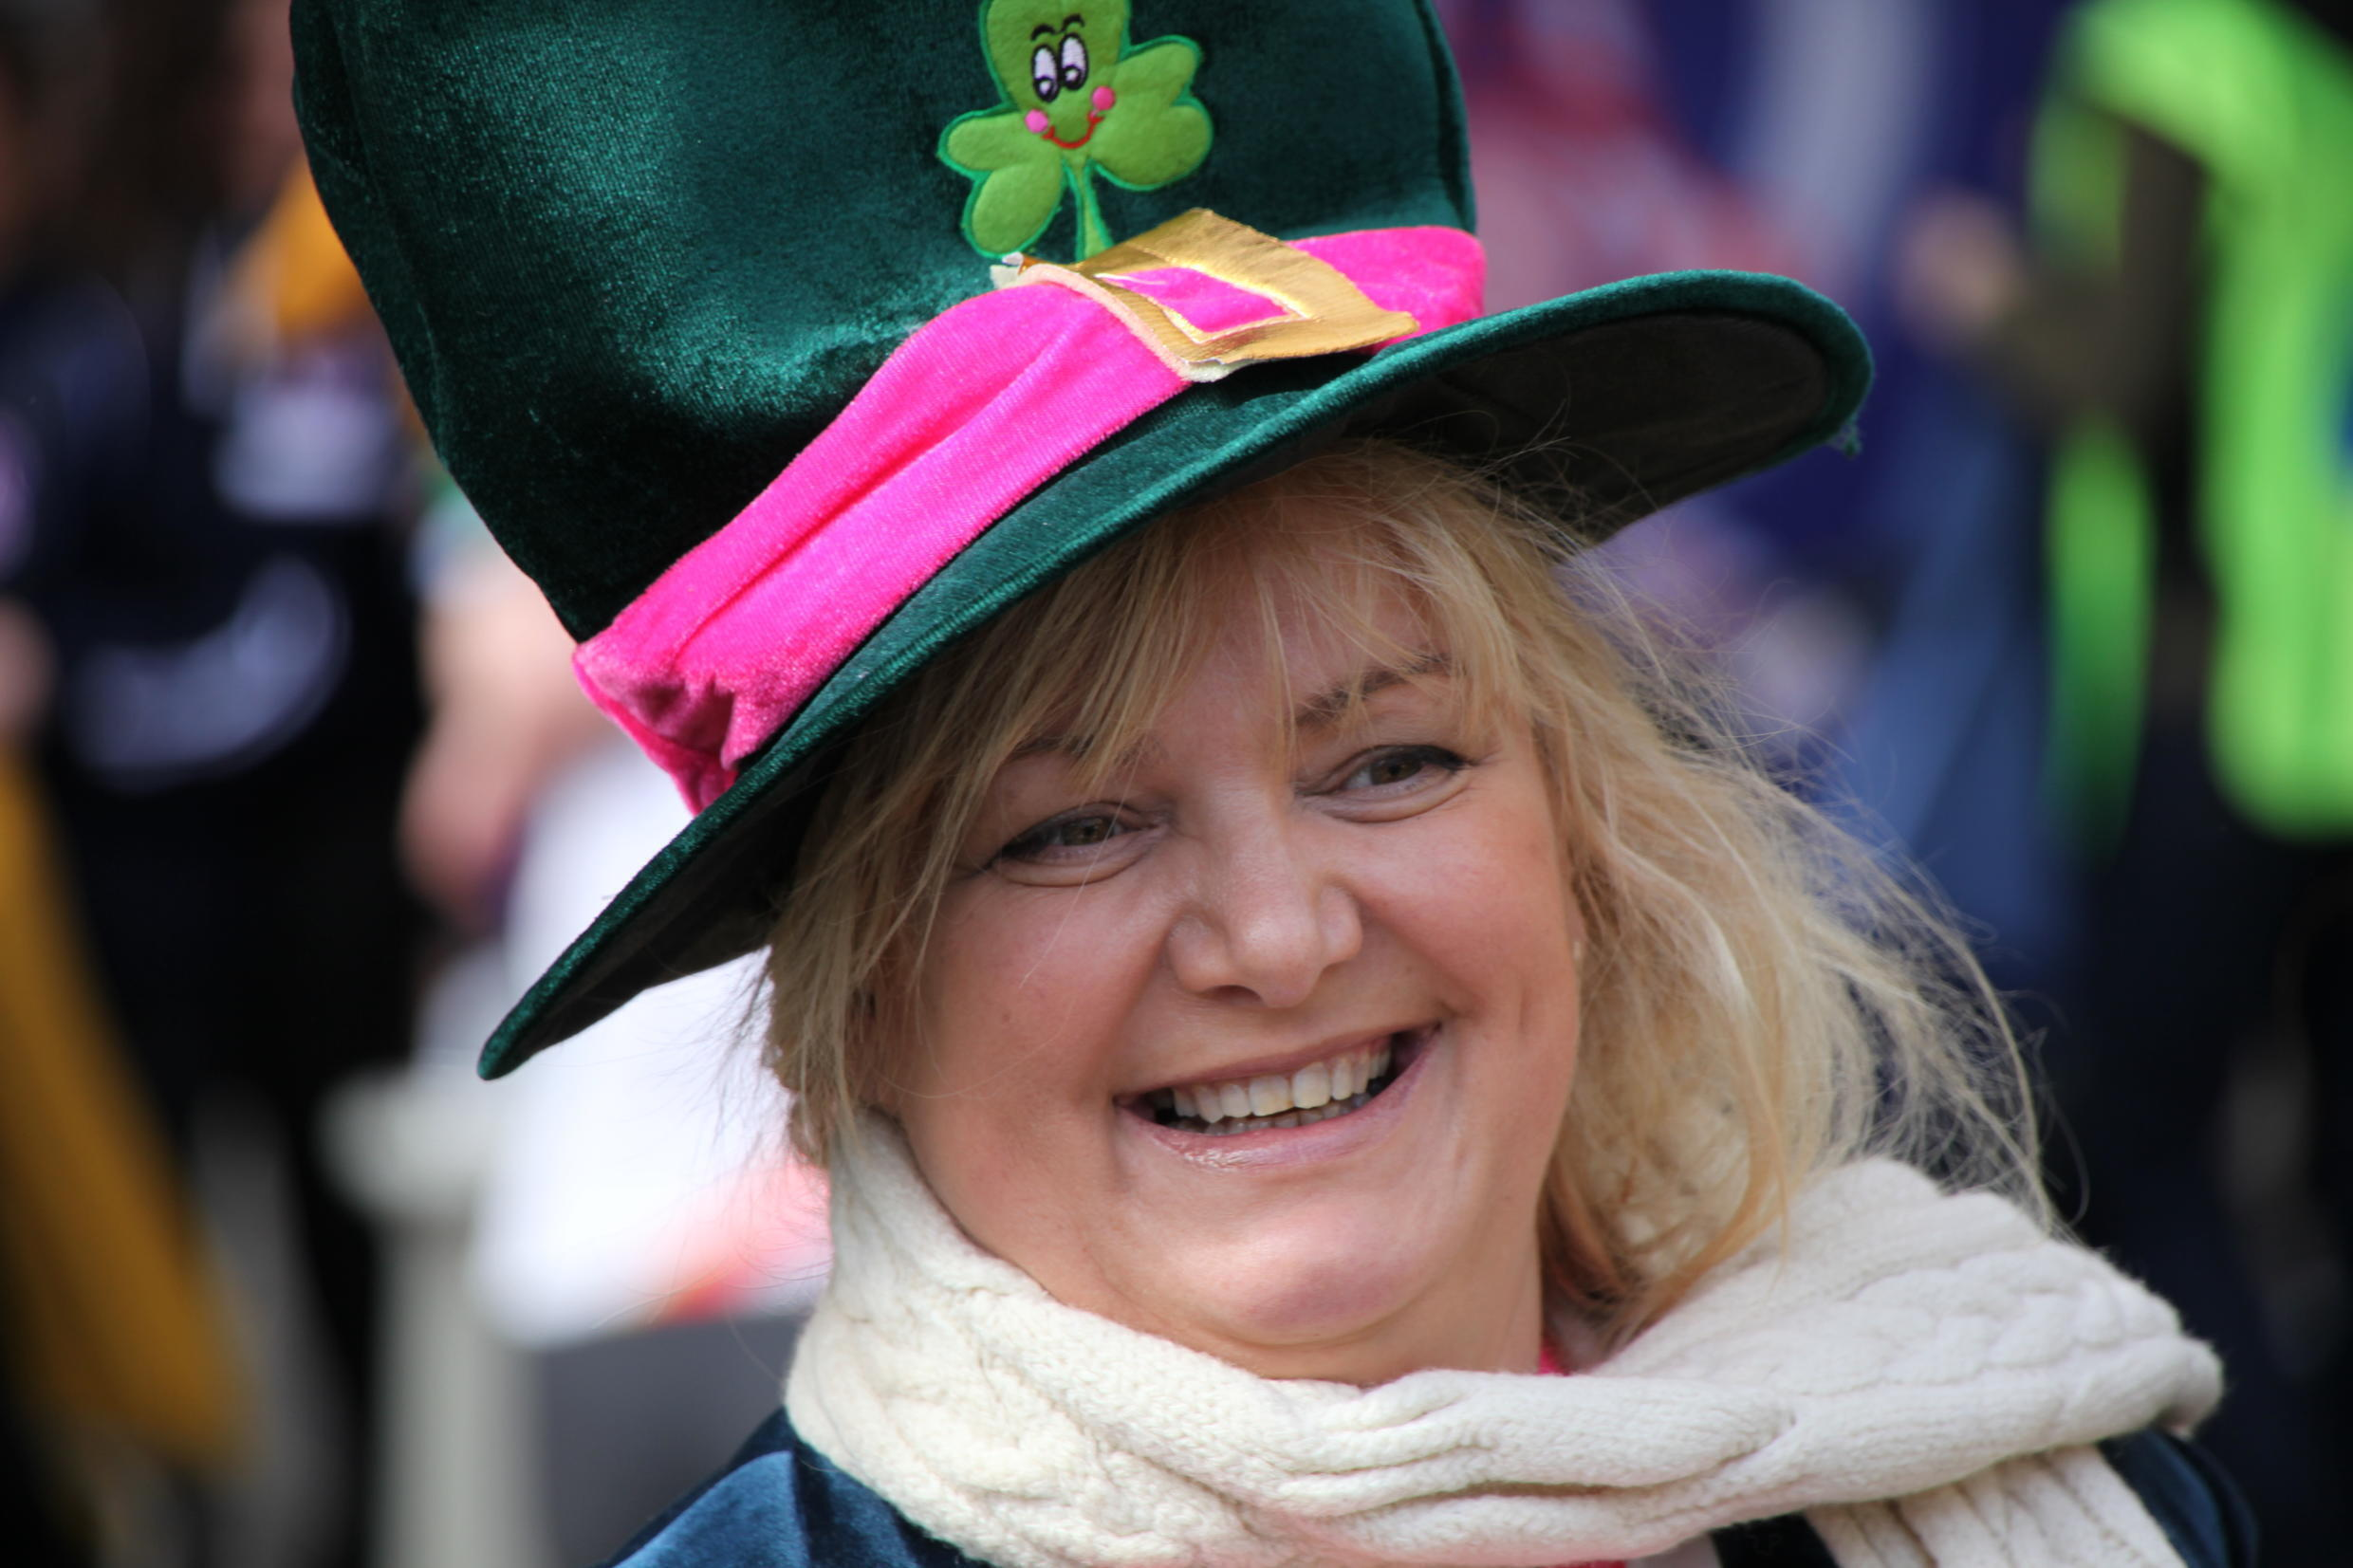 A leprechaun hat with shamrock attached.